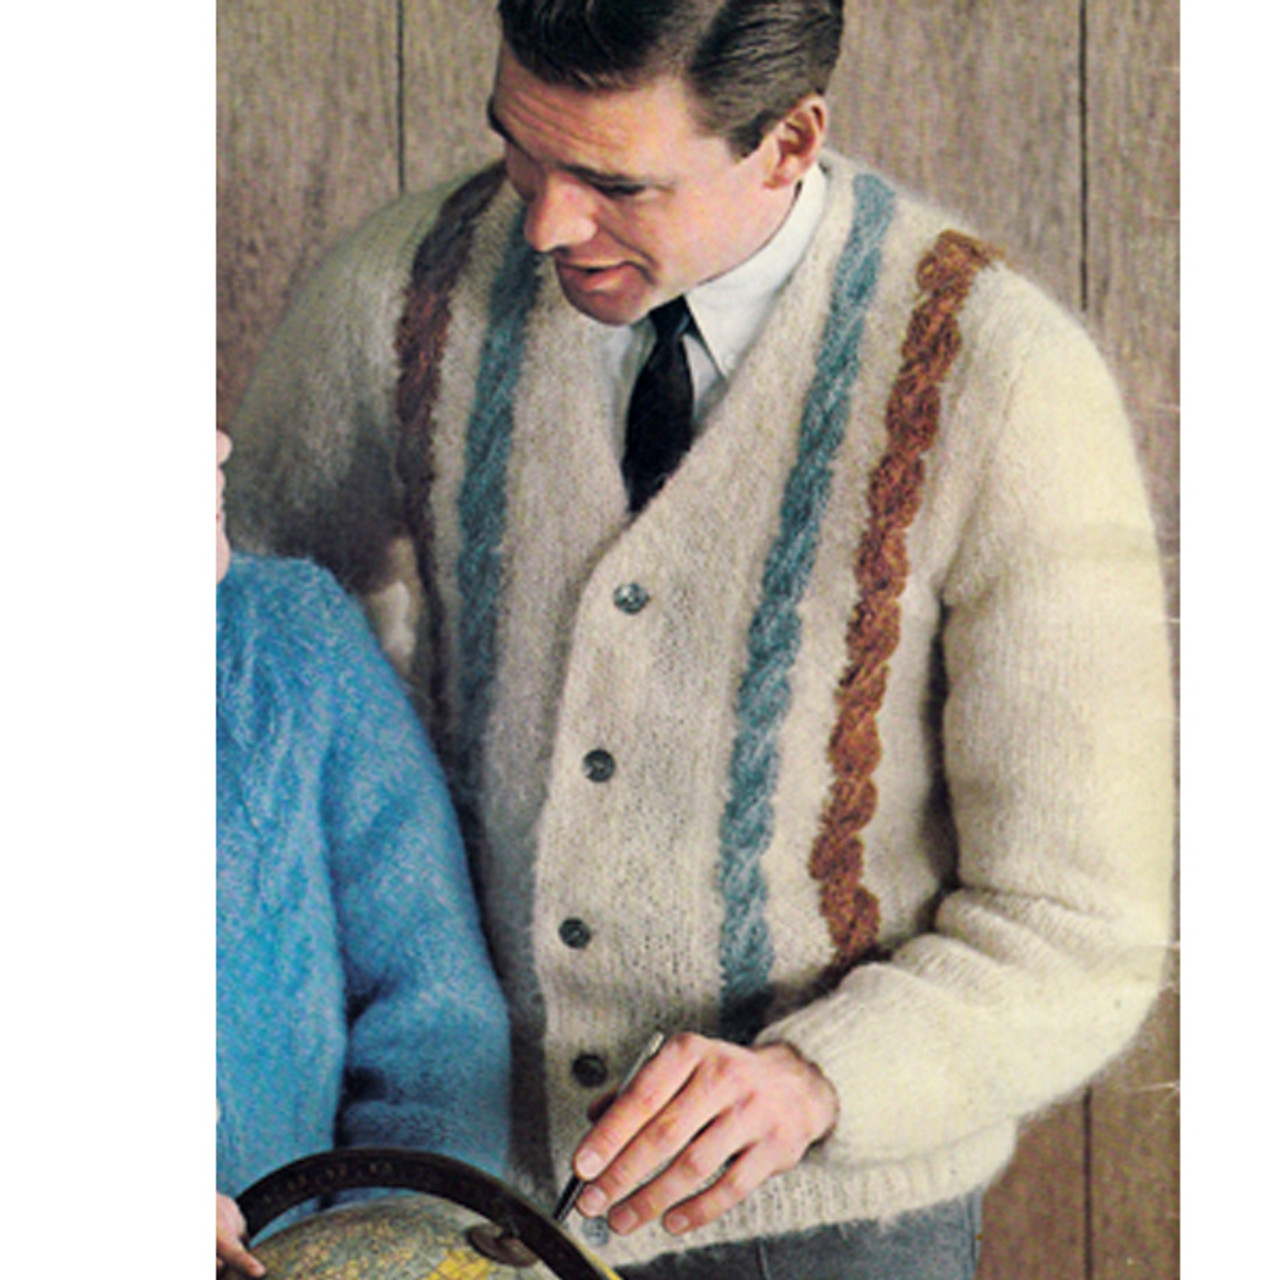 Cable Striped Mans Knitted Cardigan Pattern